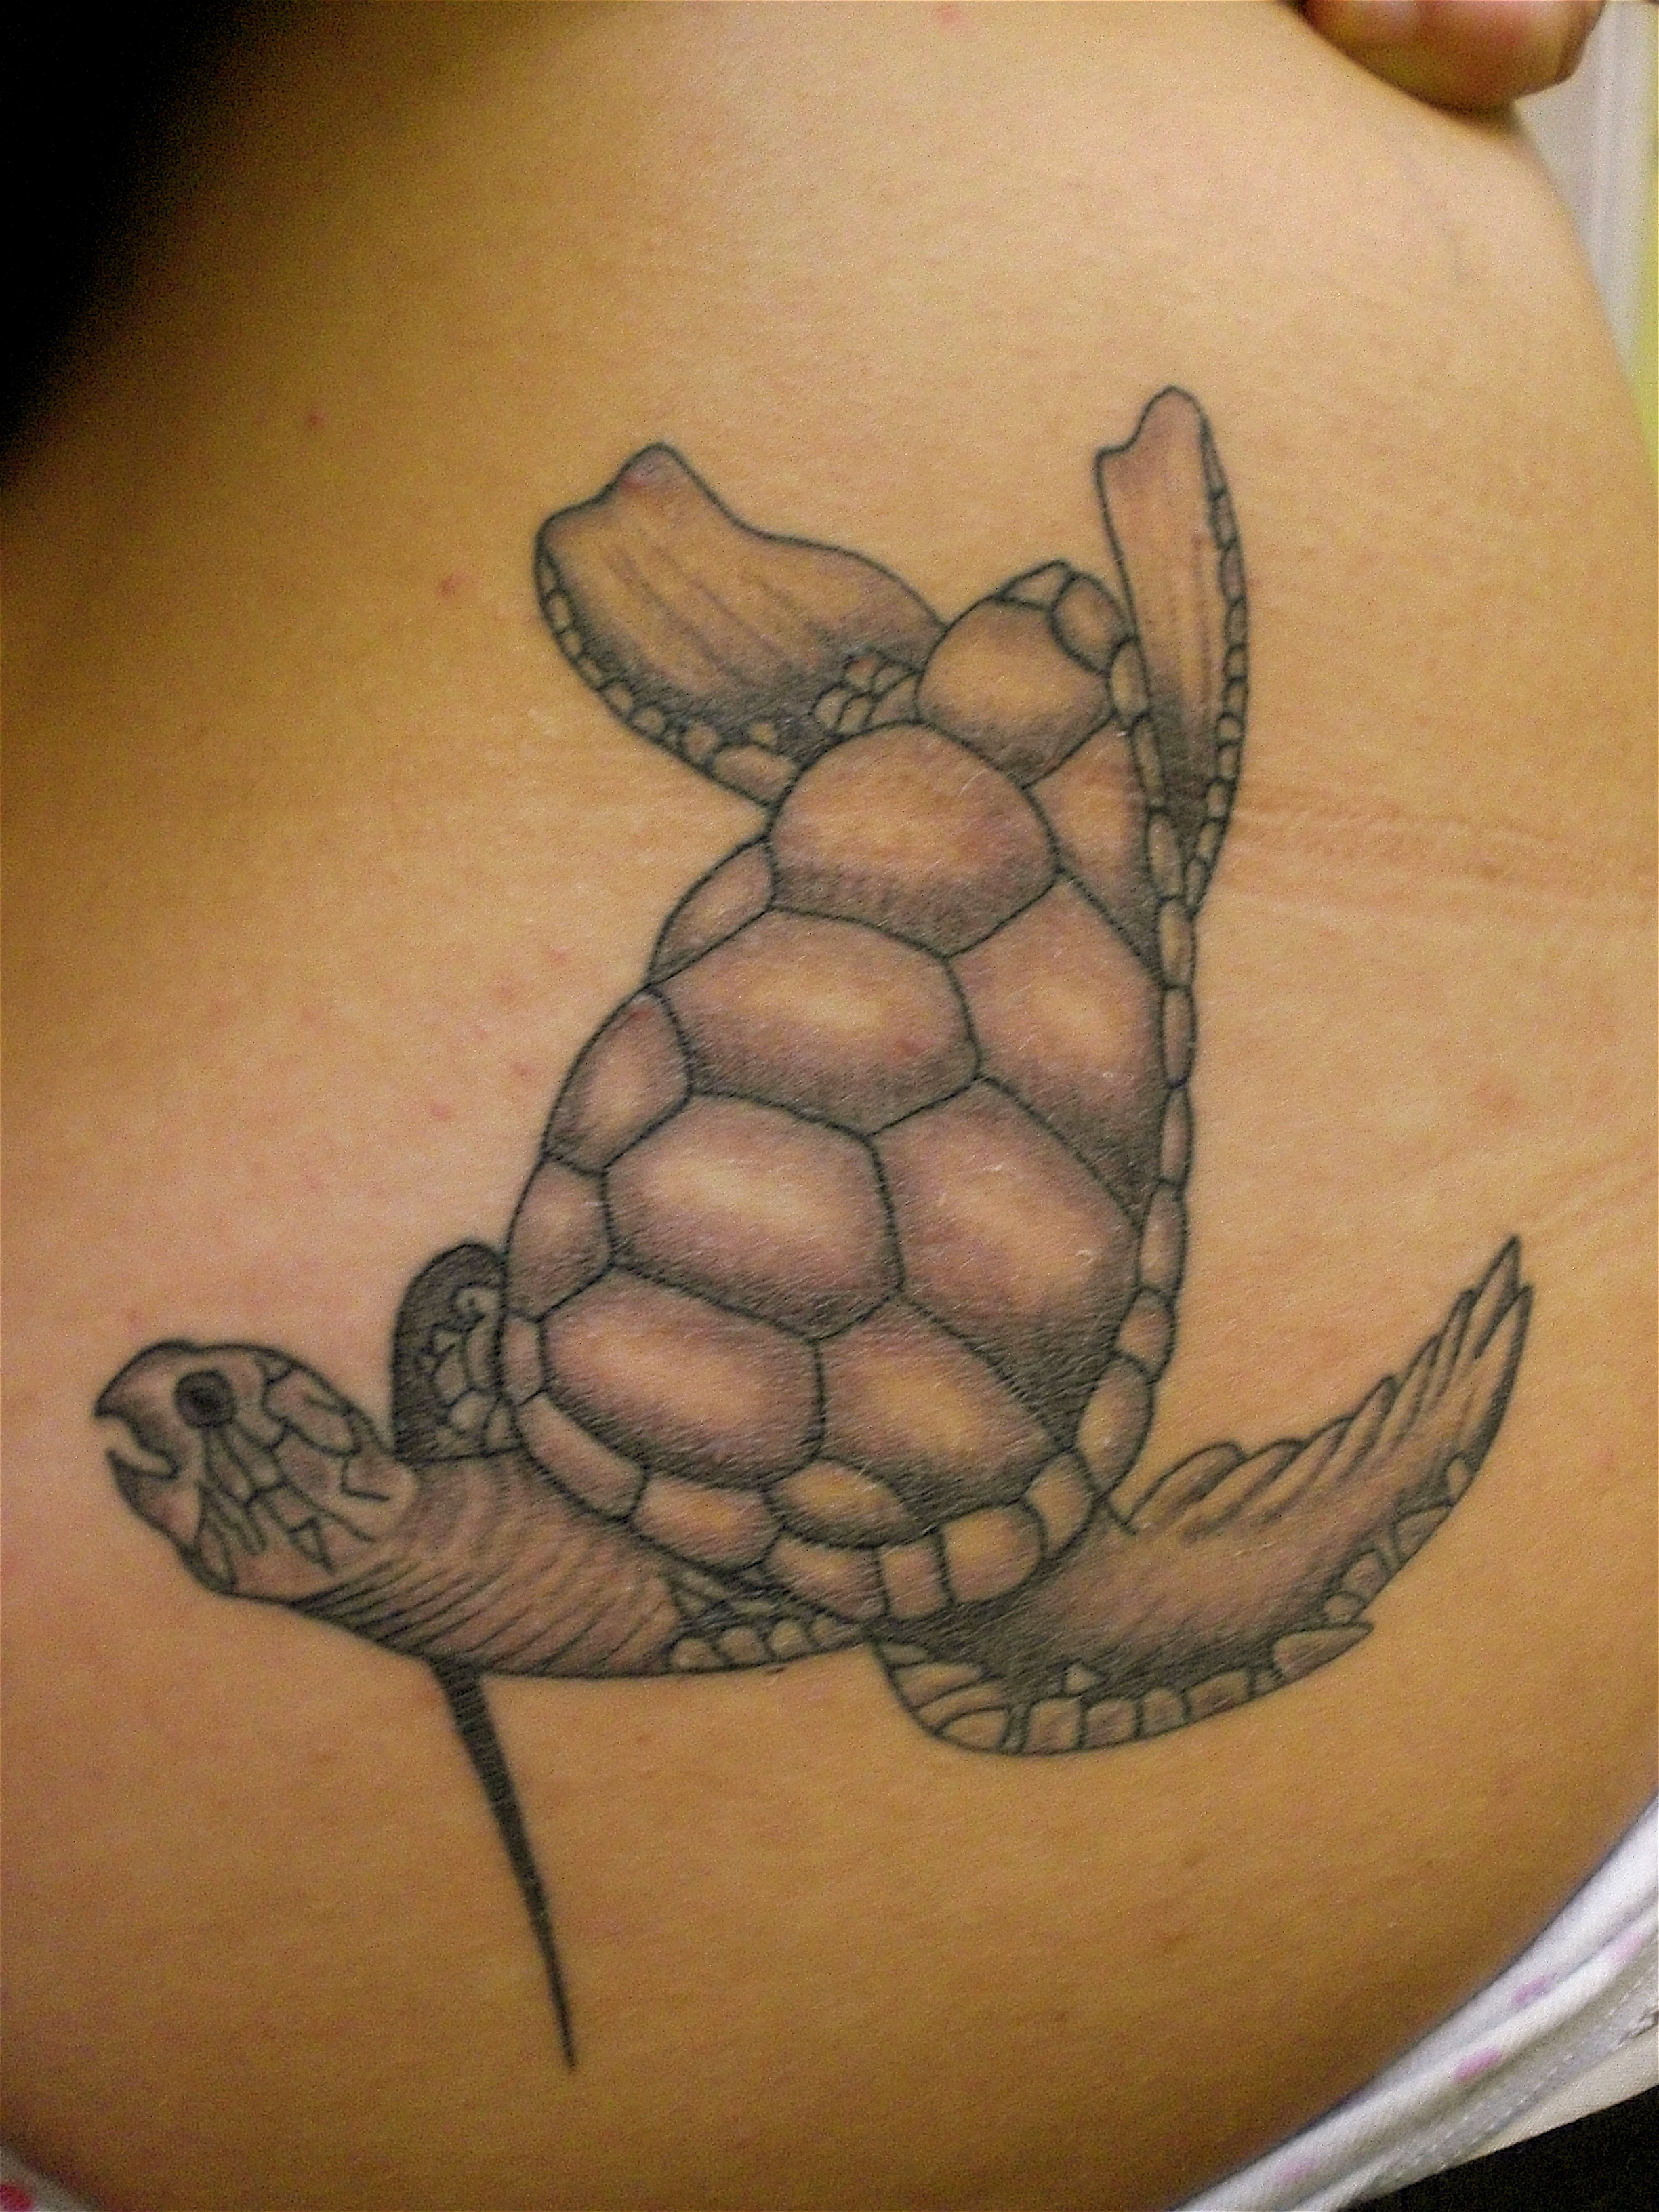 turtle tattoos designs ideas and meaning tattoos for you. Black Bedroom Furniture Sets. Home Design Ideas